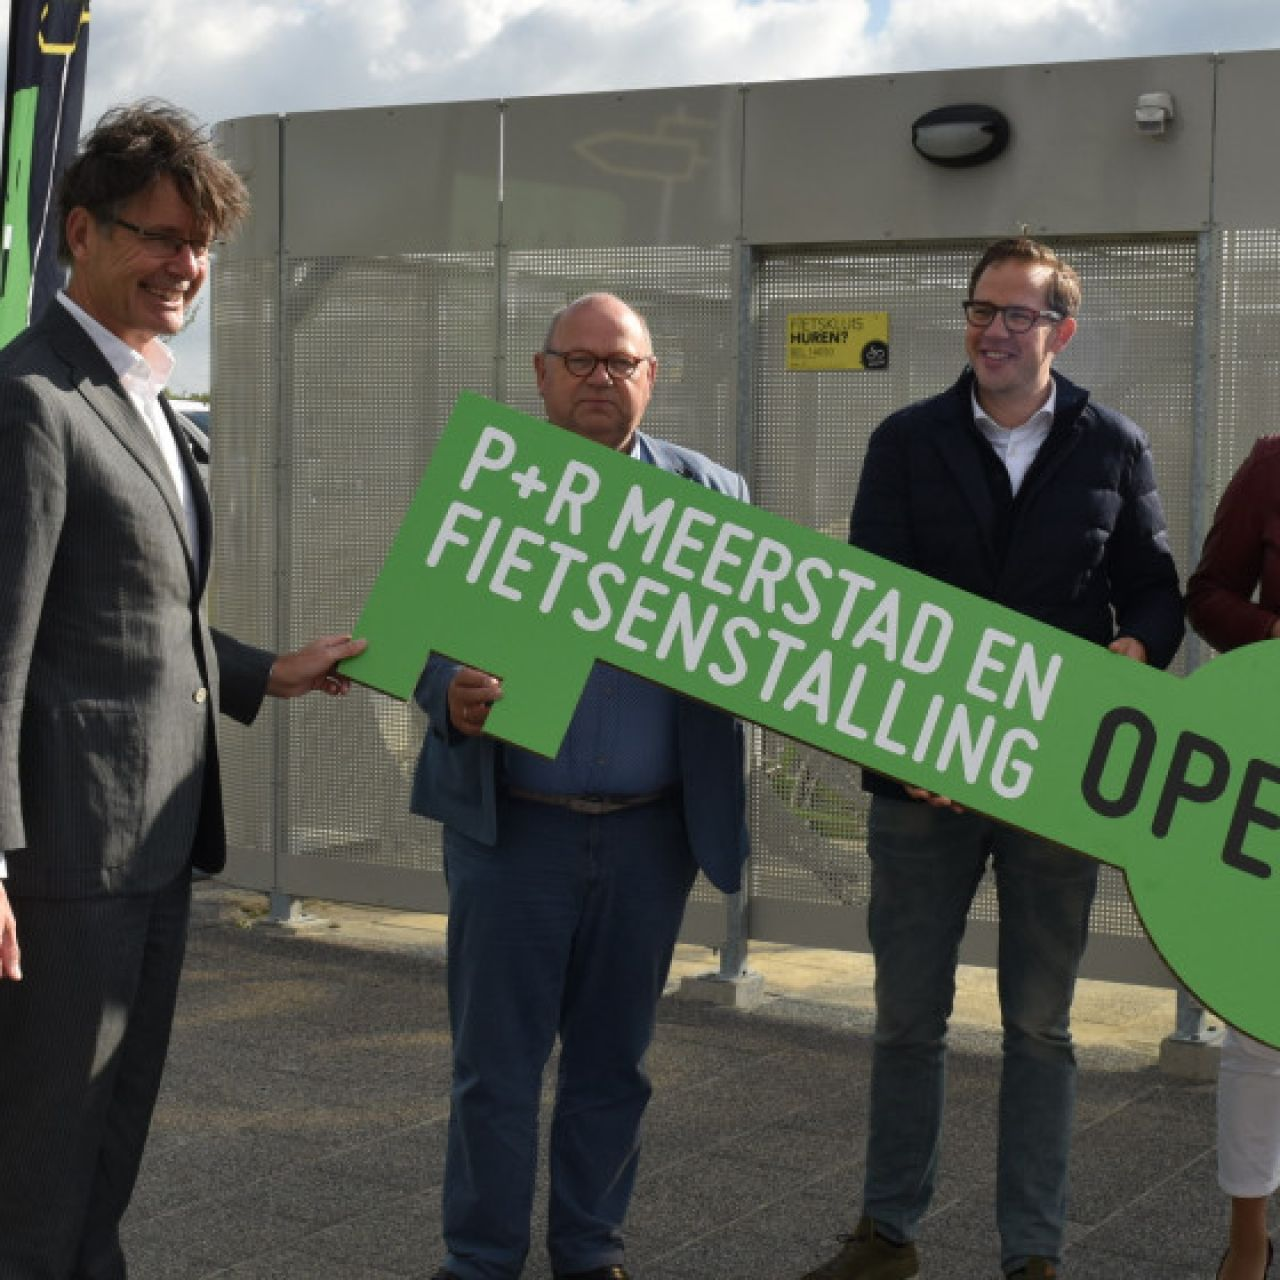 Opening P+R Meerstad with bike safes